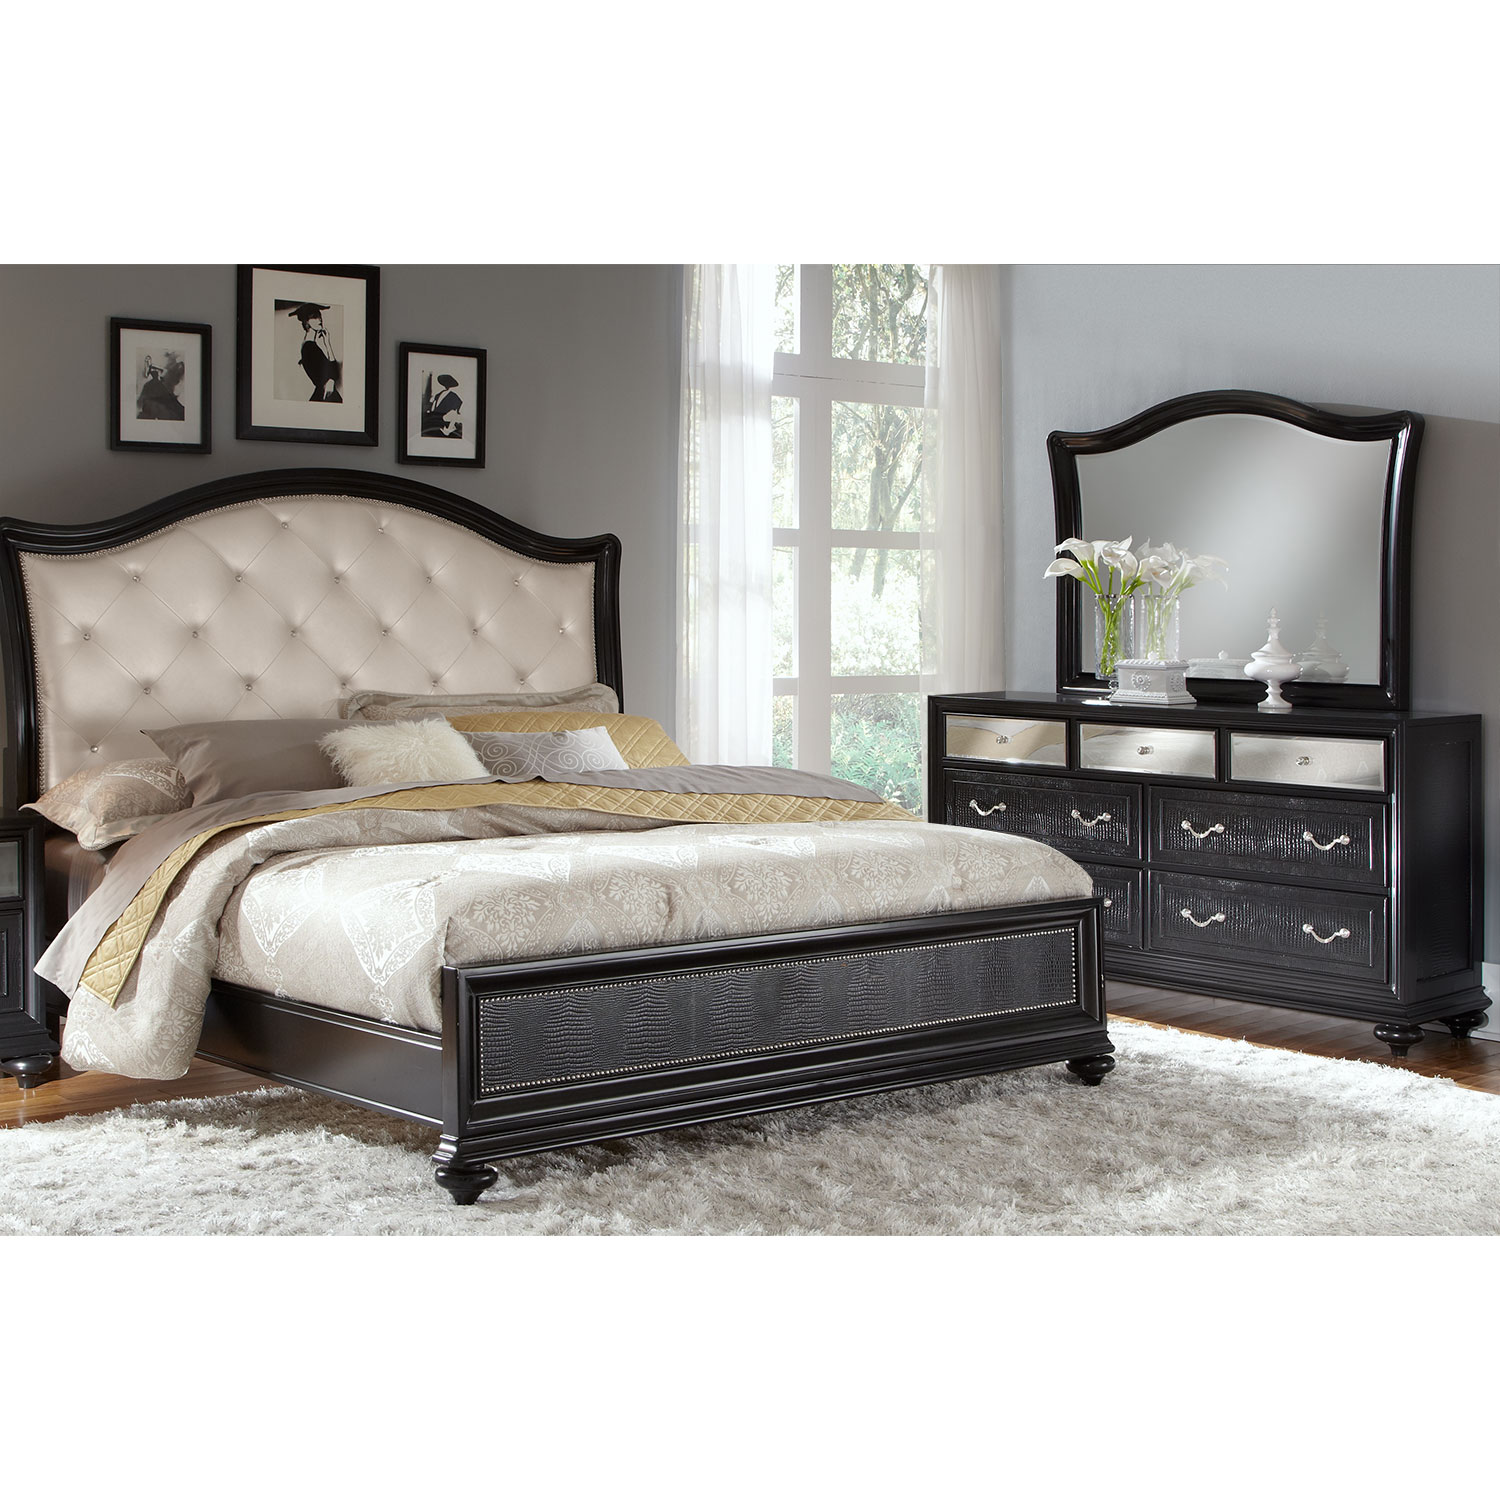 King Size Bedroom Sets marilyn 5-piece king bedroom set - ebony | american signature